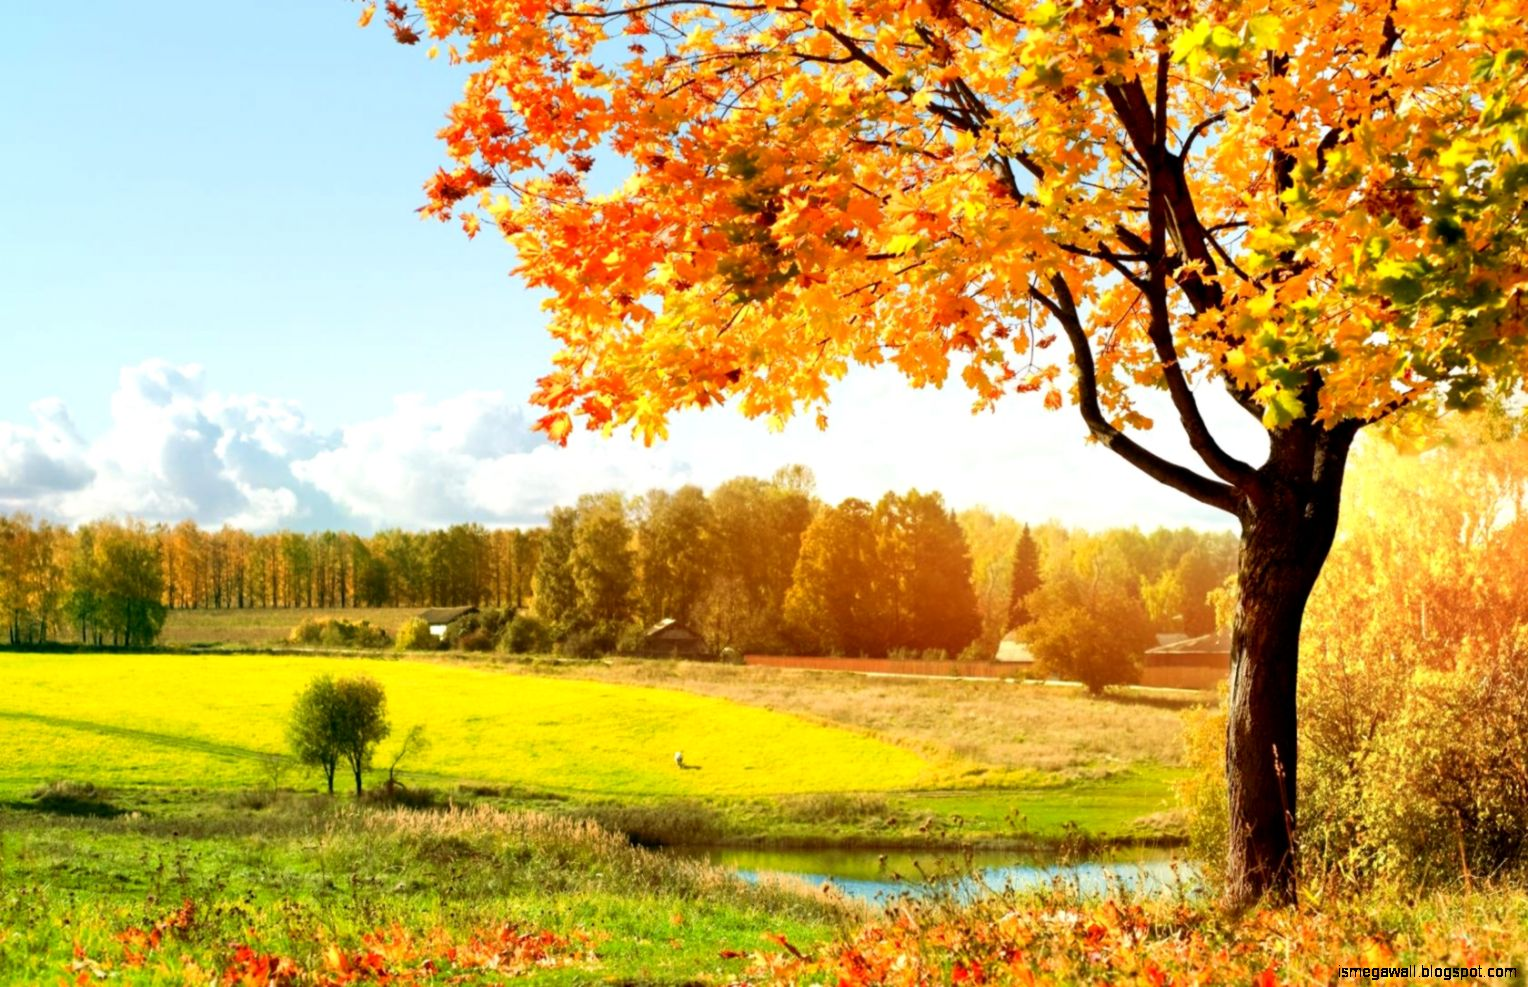 Autumn Wallpaper Hd Widescreen